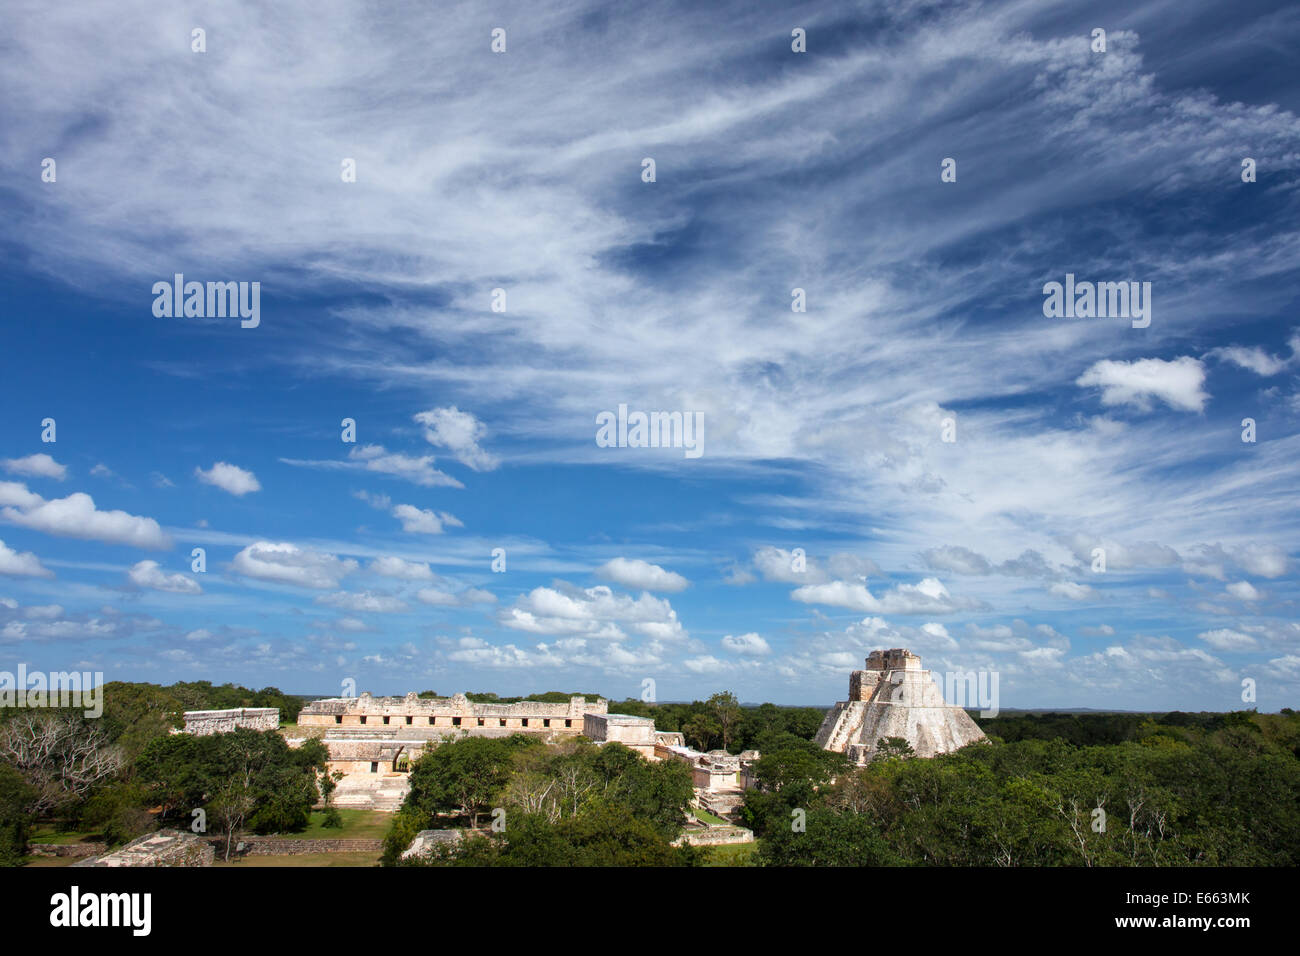 A wide view of the Uxmal archaeological site in Yucatan, Mexico. - Stock Image